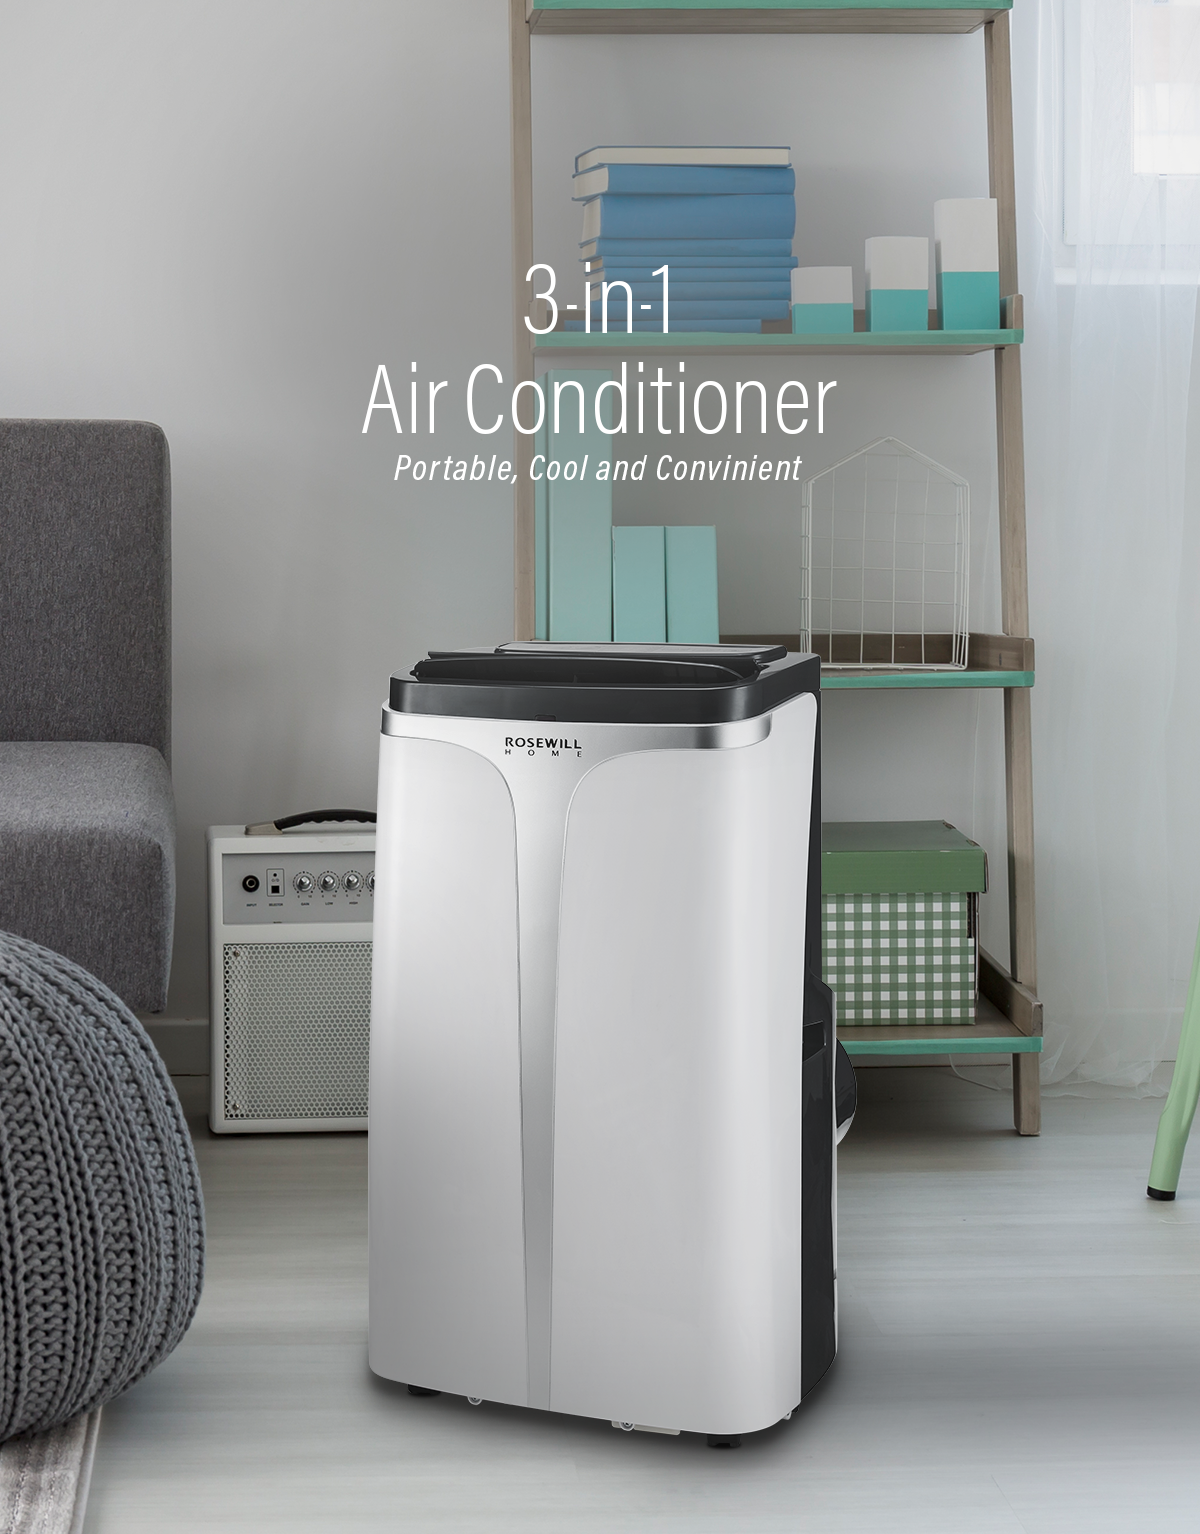 RHPA-18002 - 3-in-1 12K BTU Portable Air Conditioner ...